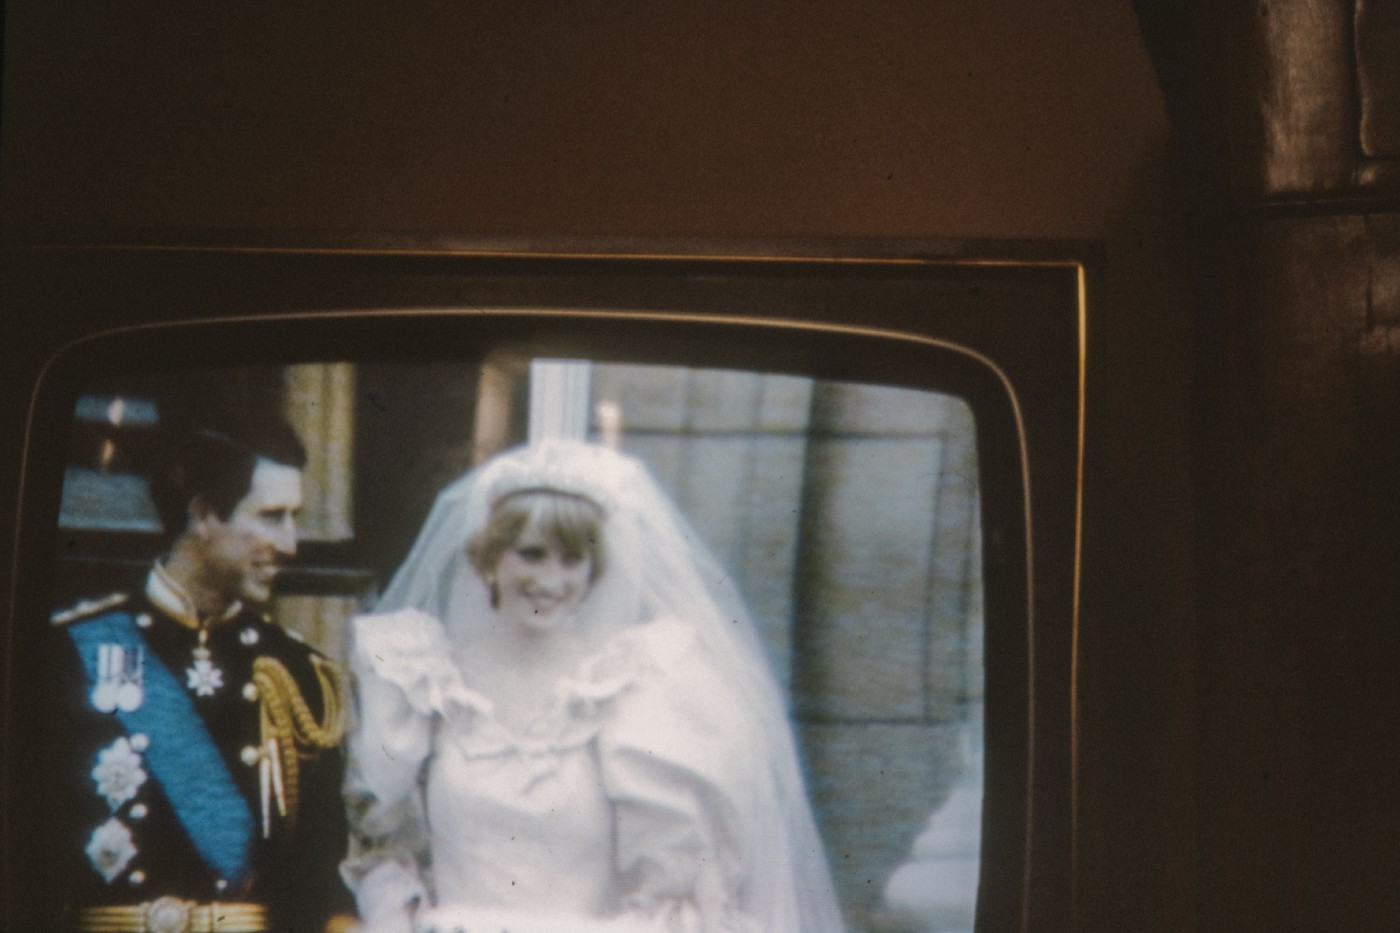 Lady Di and Prince Charles on their wedding day, from an old TV